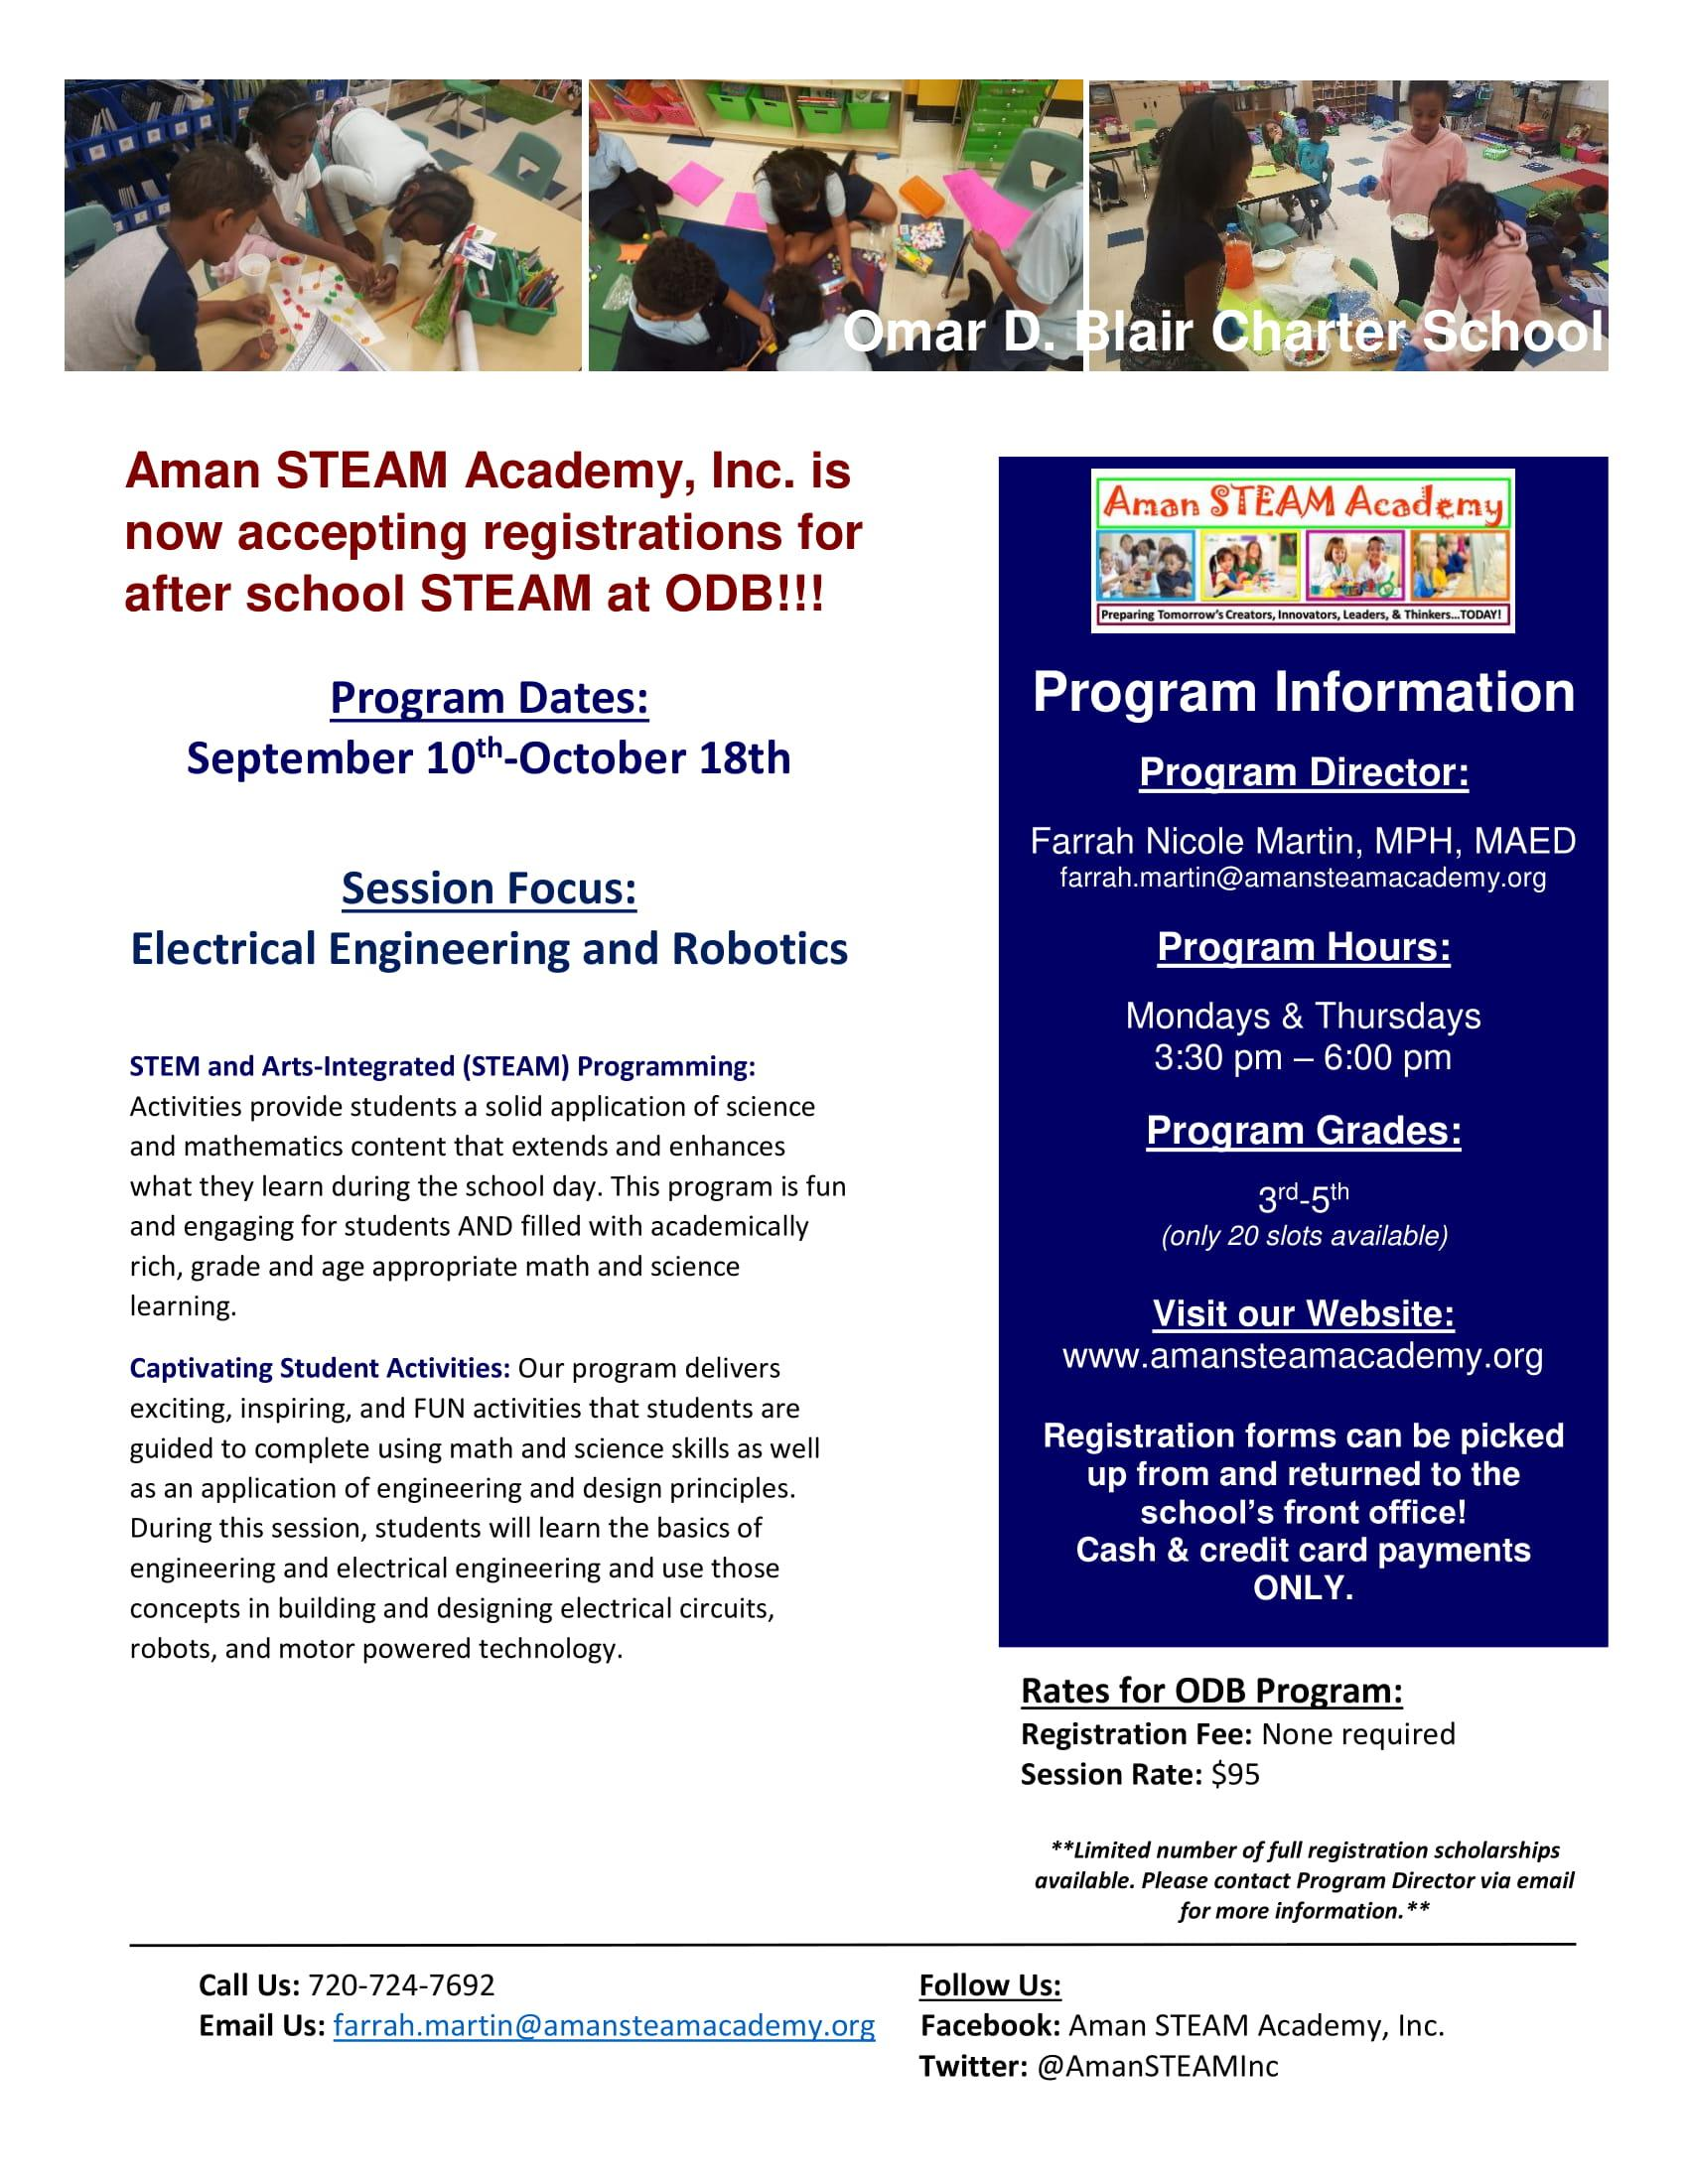 Omar D Blair Charter School Circuit Basics With Your Students And Have Them Build A Closed What They Learn During The Day This Program Is Fun Engaging For Filled Academically Rich Grade Age Appropriate Math